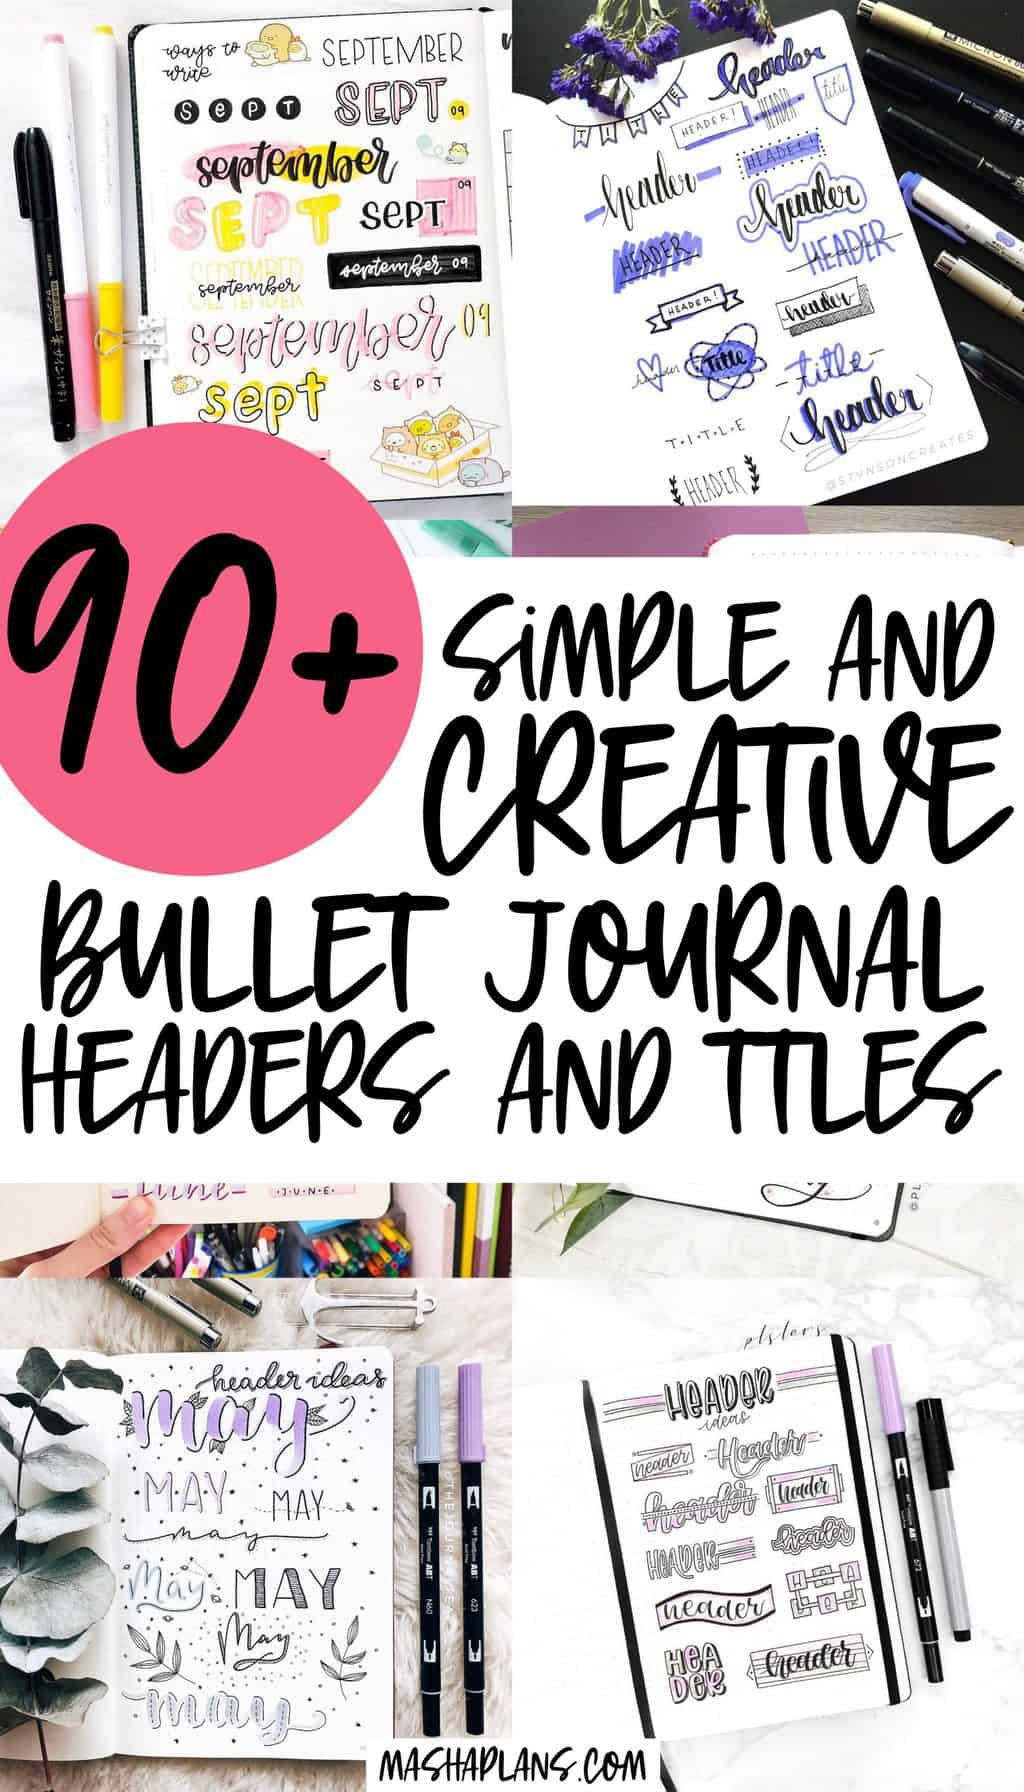 90+ Simple And Creative Bullet Journal Header And Title Ideas | Masha Plans